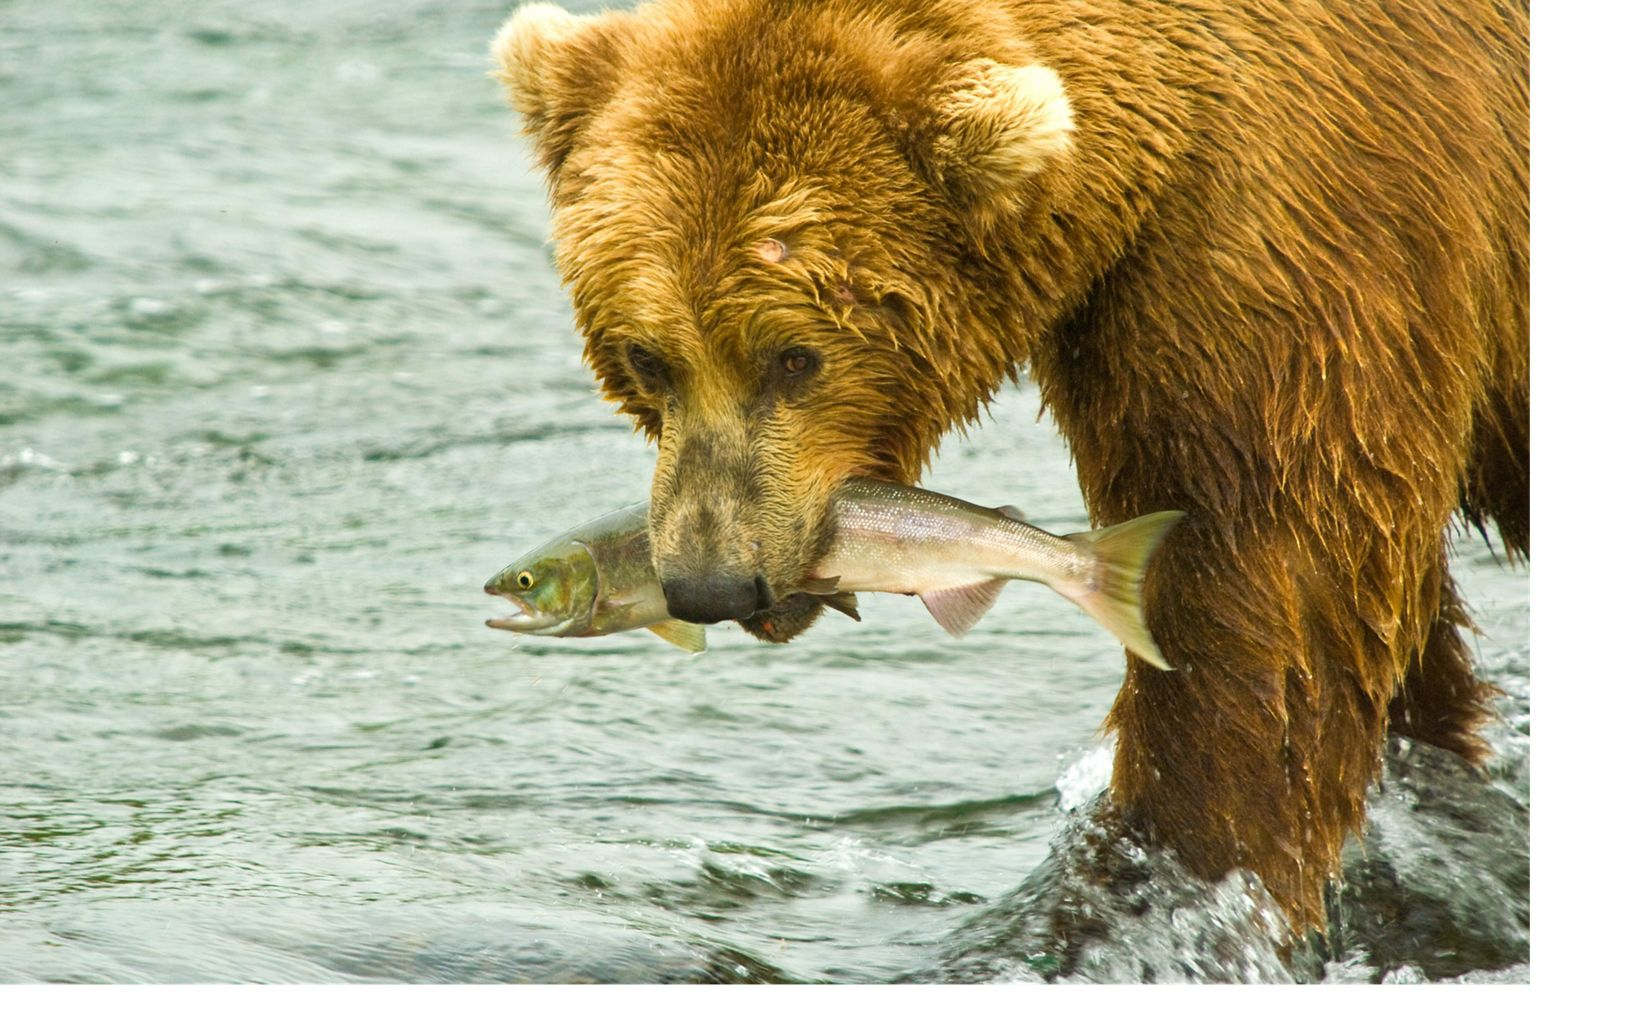 a brown bear with a salmon in its mouth